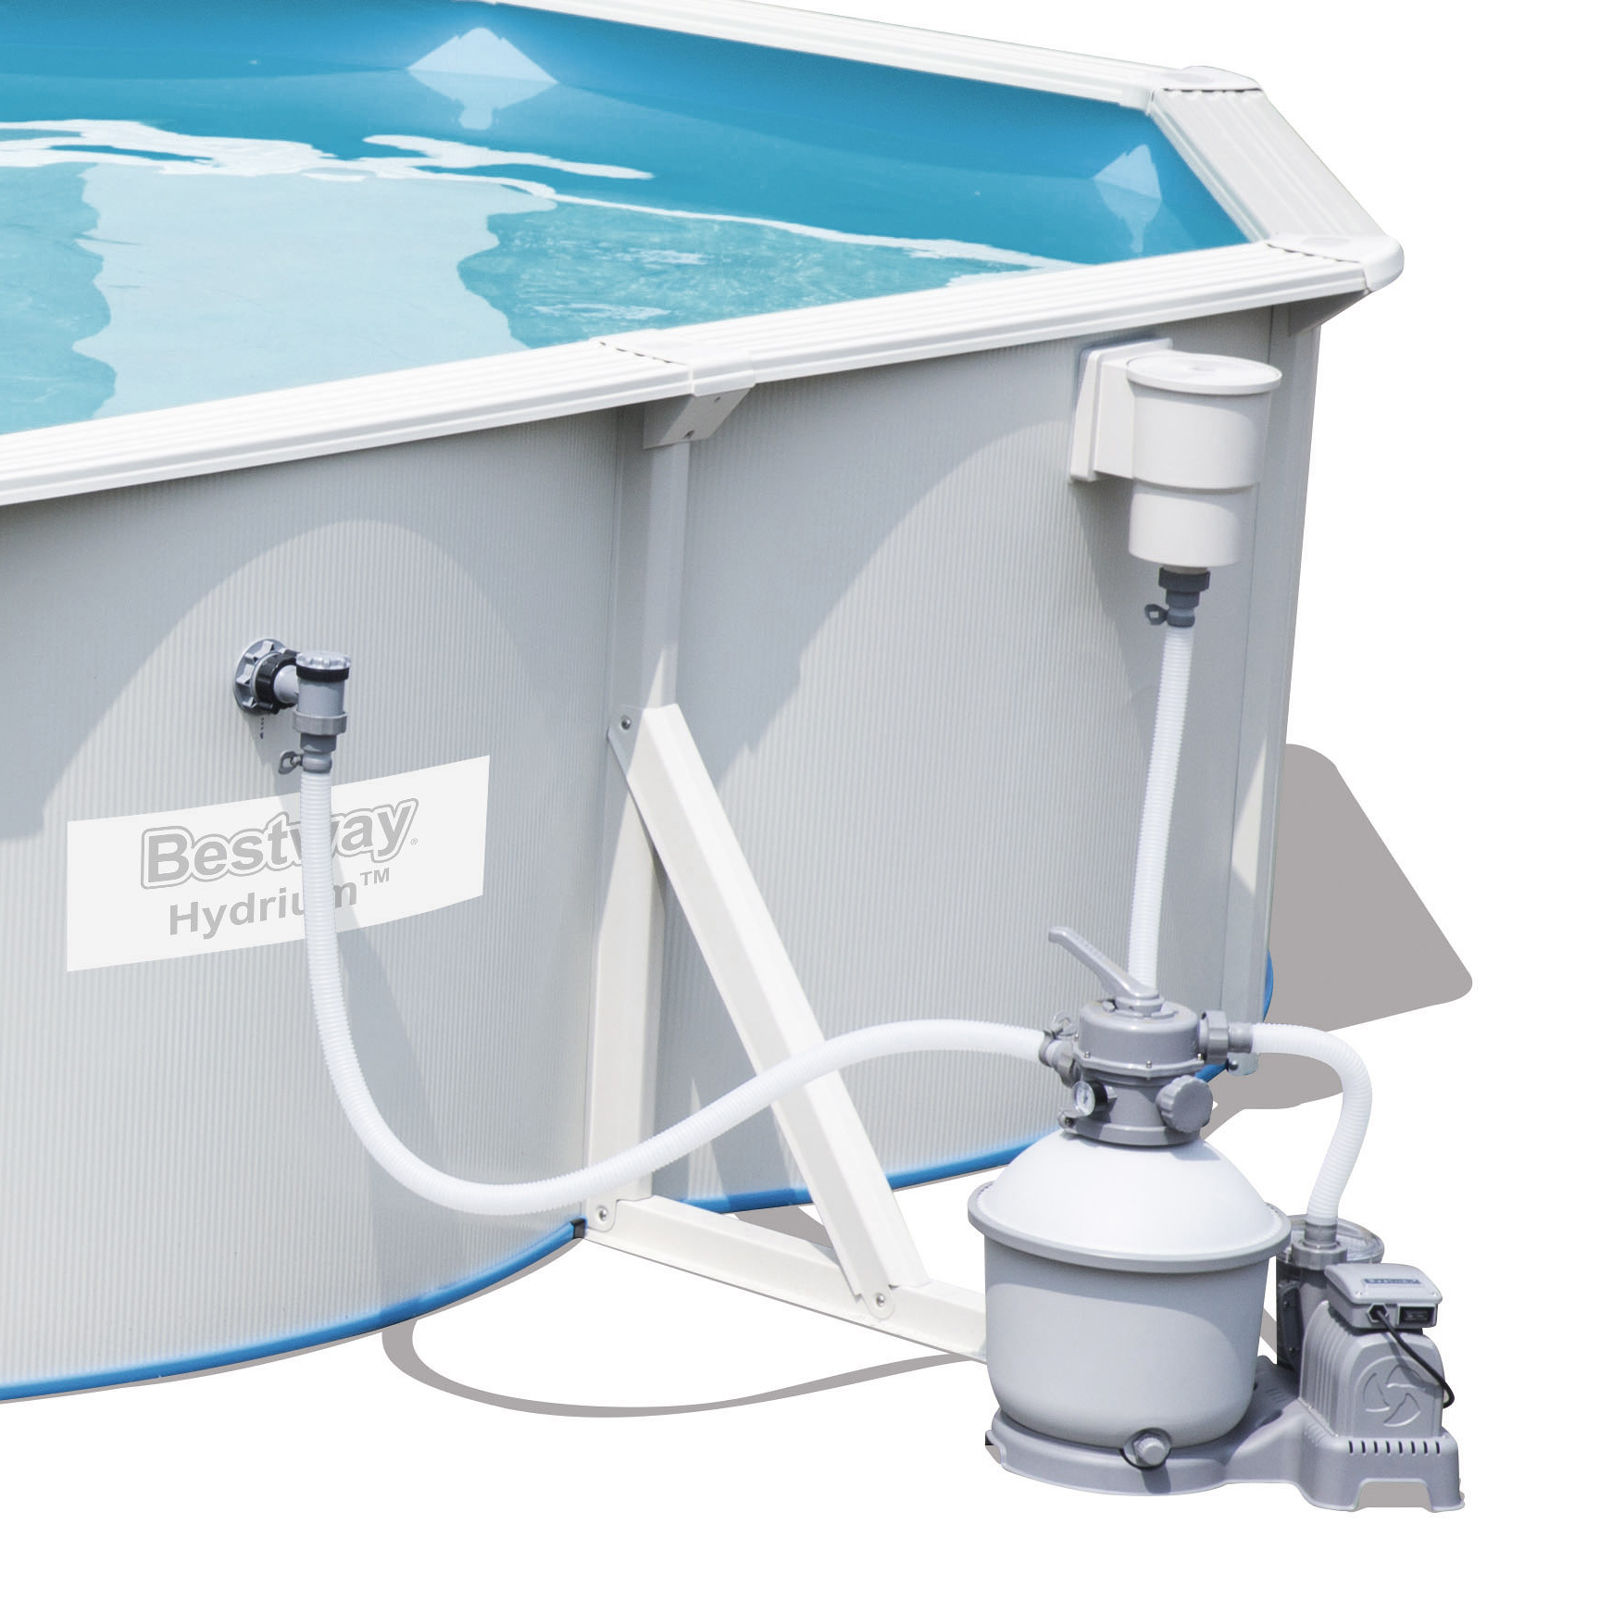 Bestway hydrium titan steel wall above ground swimming for Best above ground pool pump